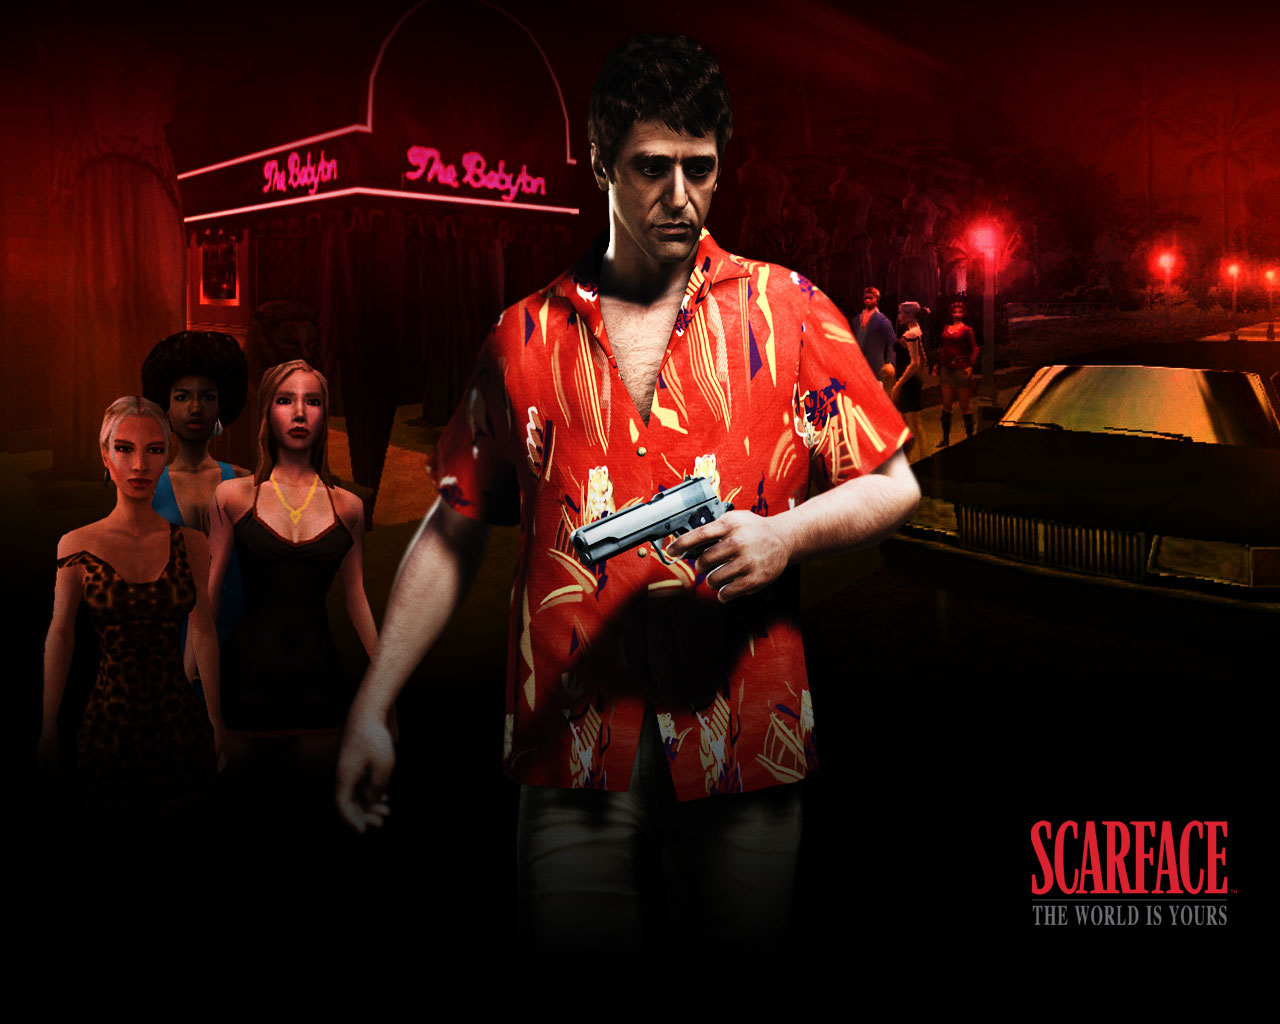 Scarface – pc [telecharger. Torrent] video dailymotion.